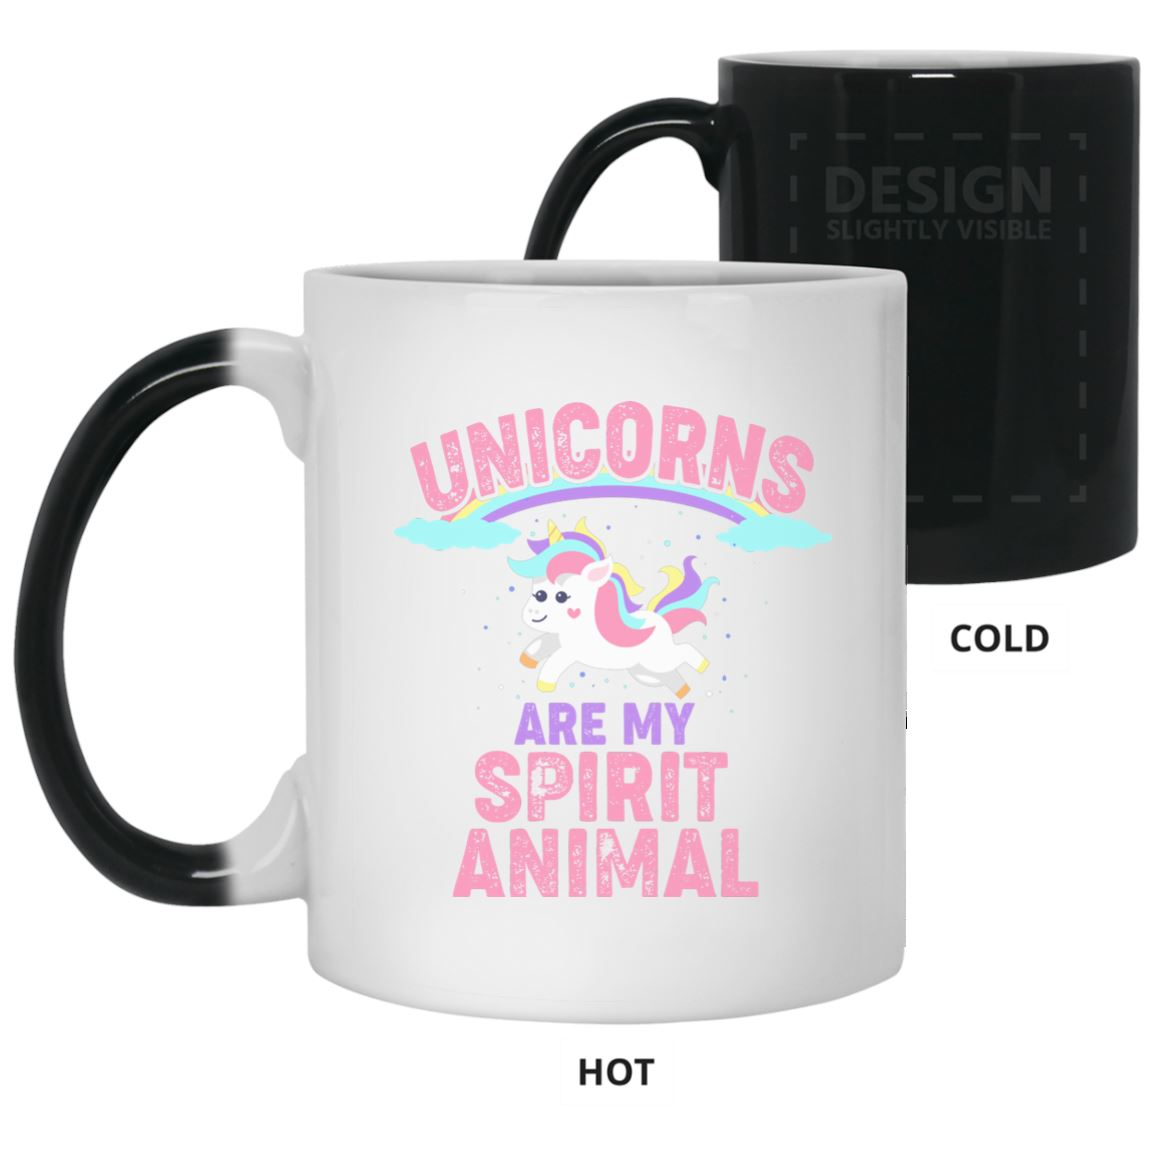 Unicorns Are My Spirit Animal Color Changing Mug Drinkware White One Size